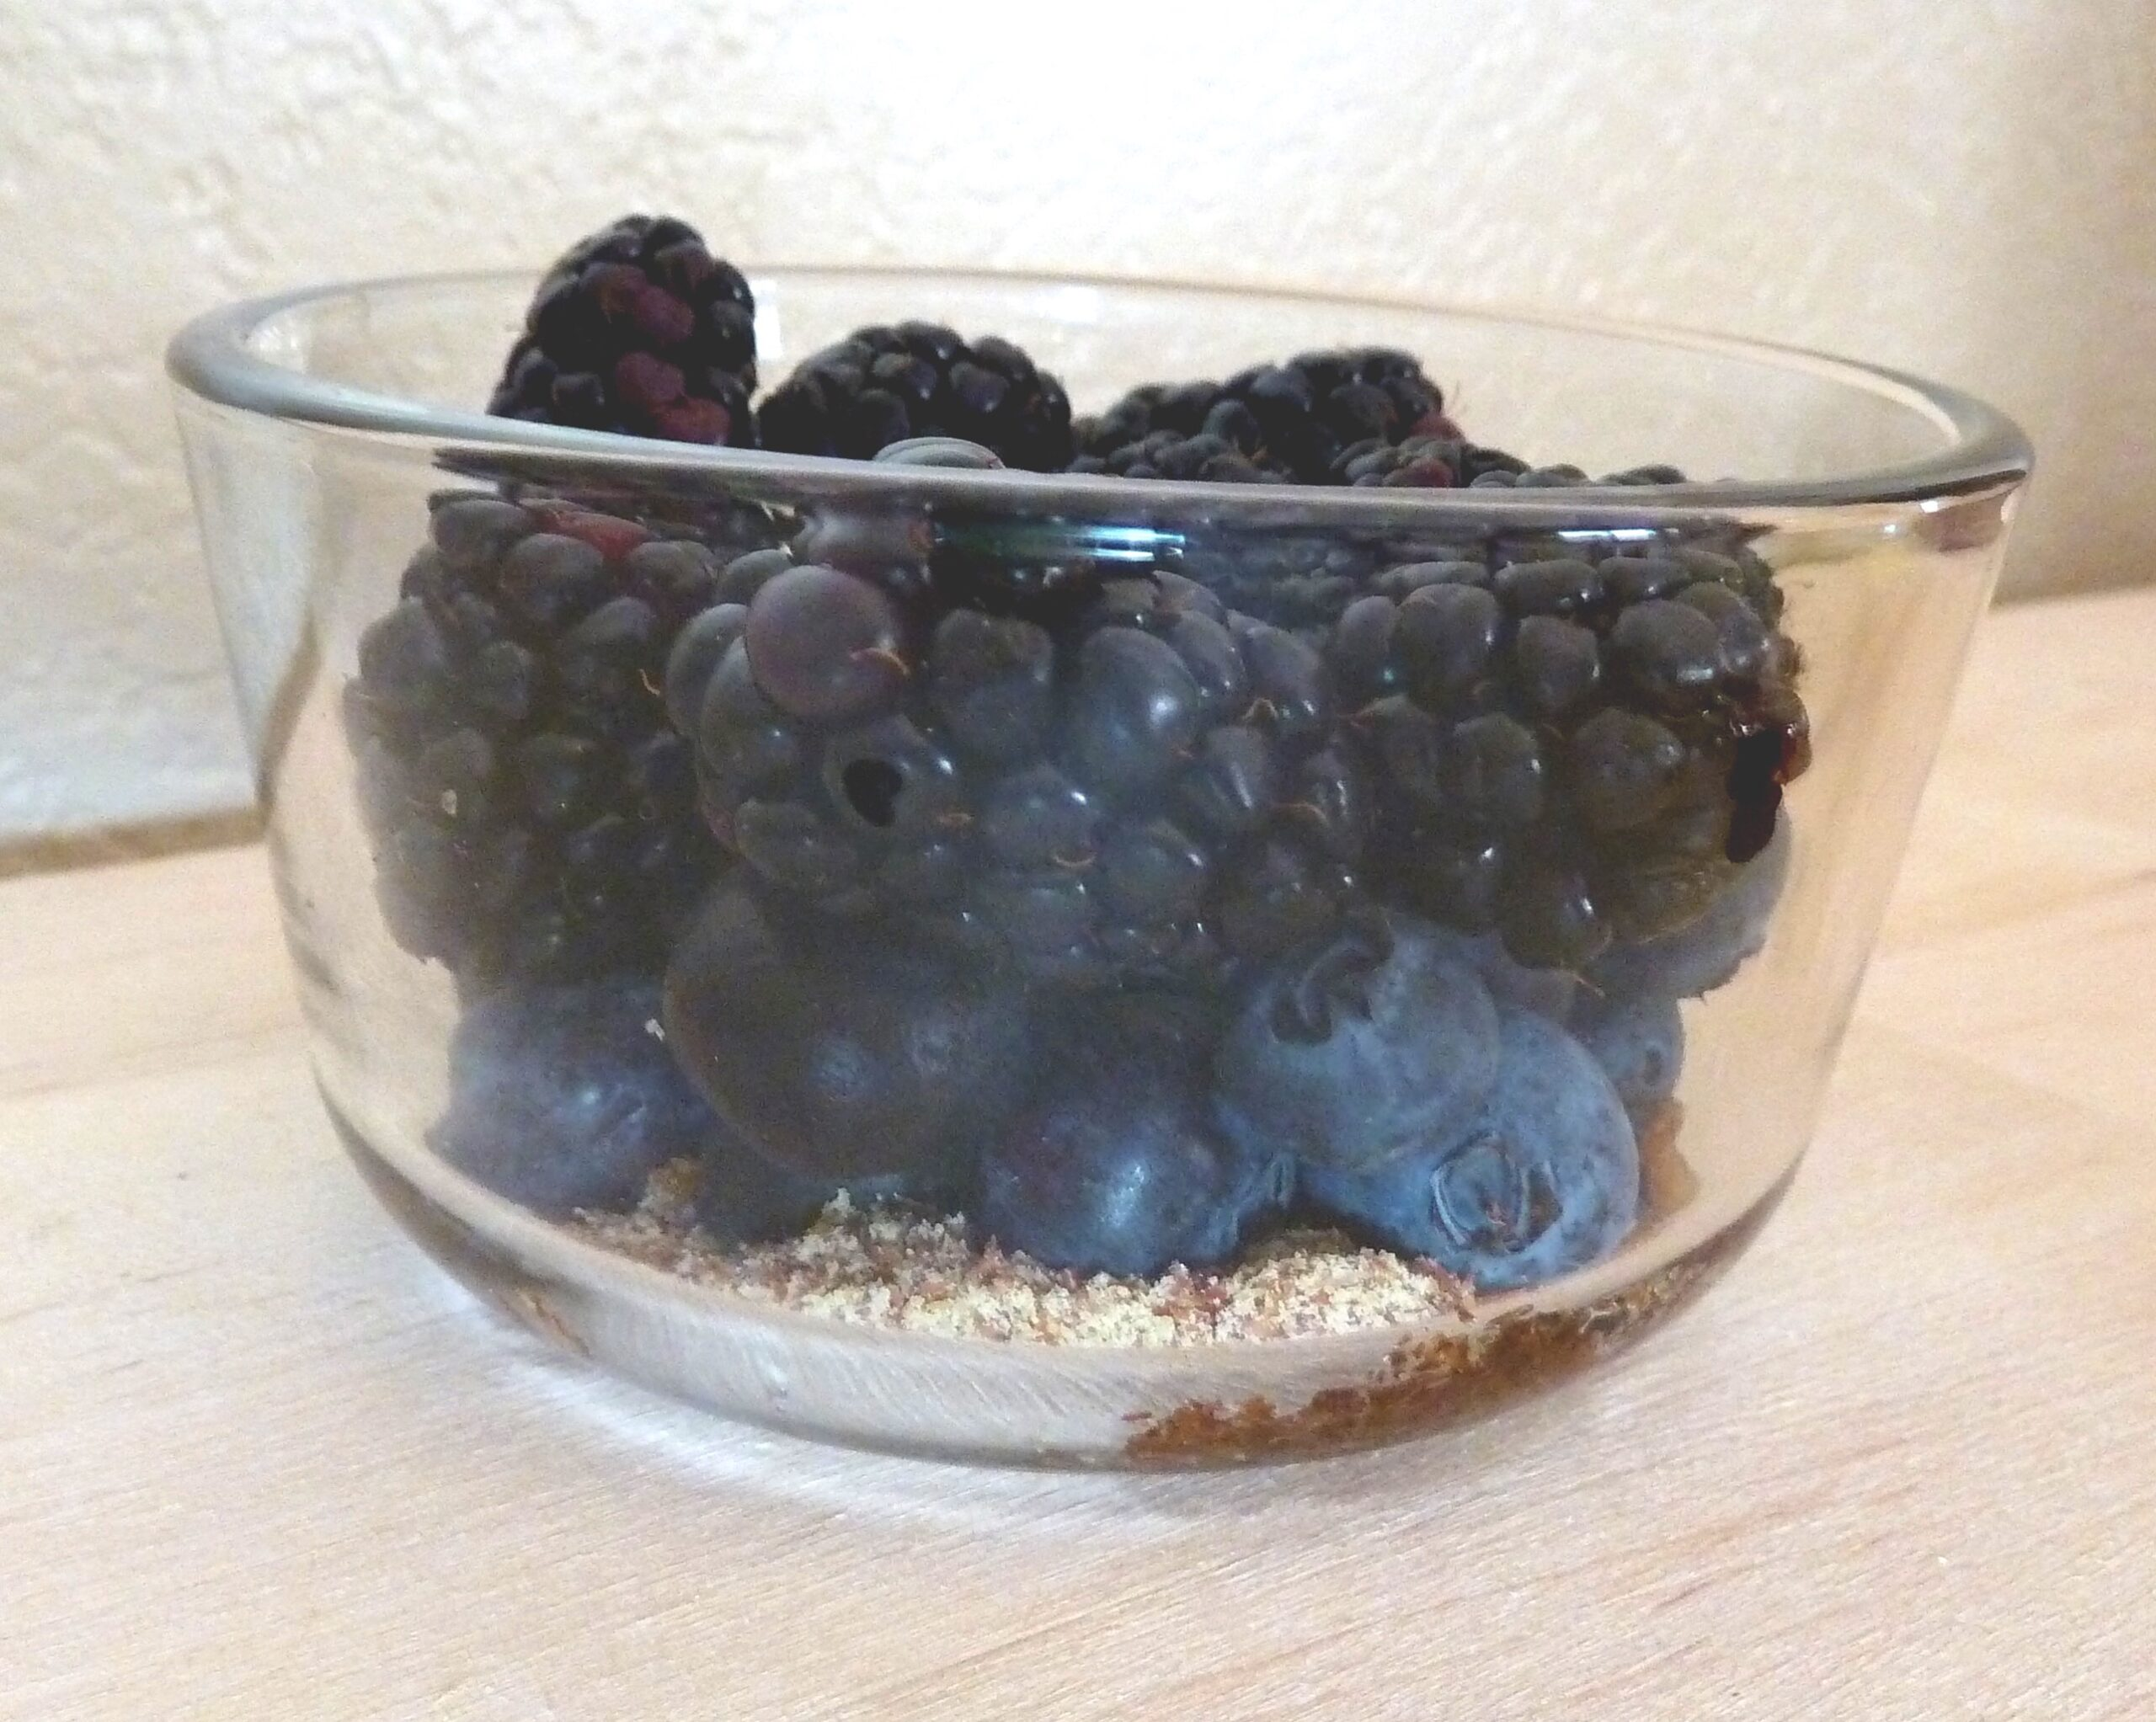 berries and other toppings for oatmeal in a container